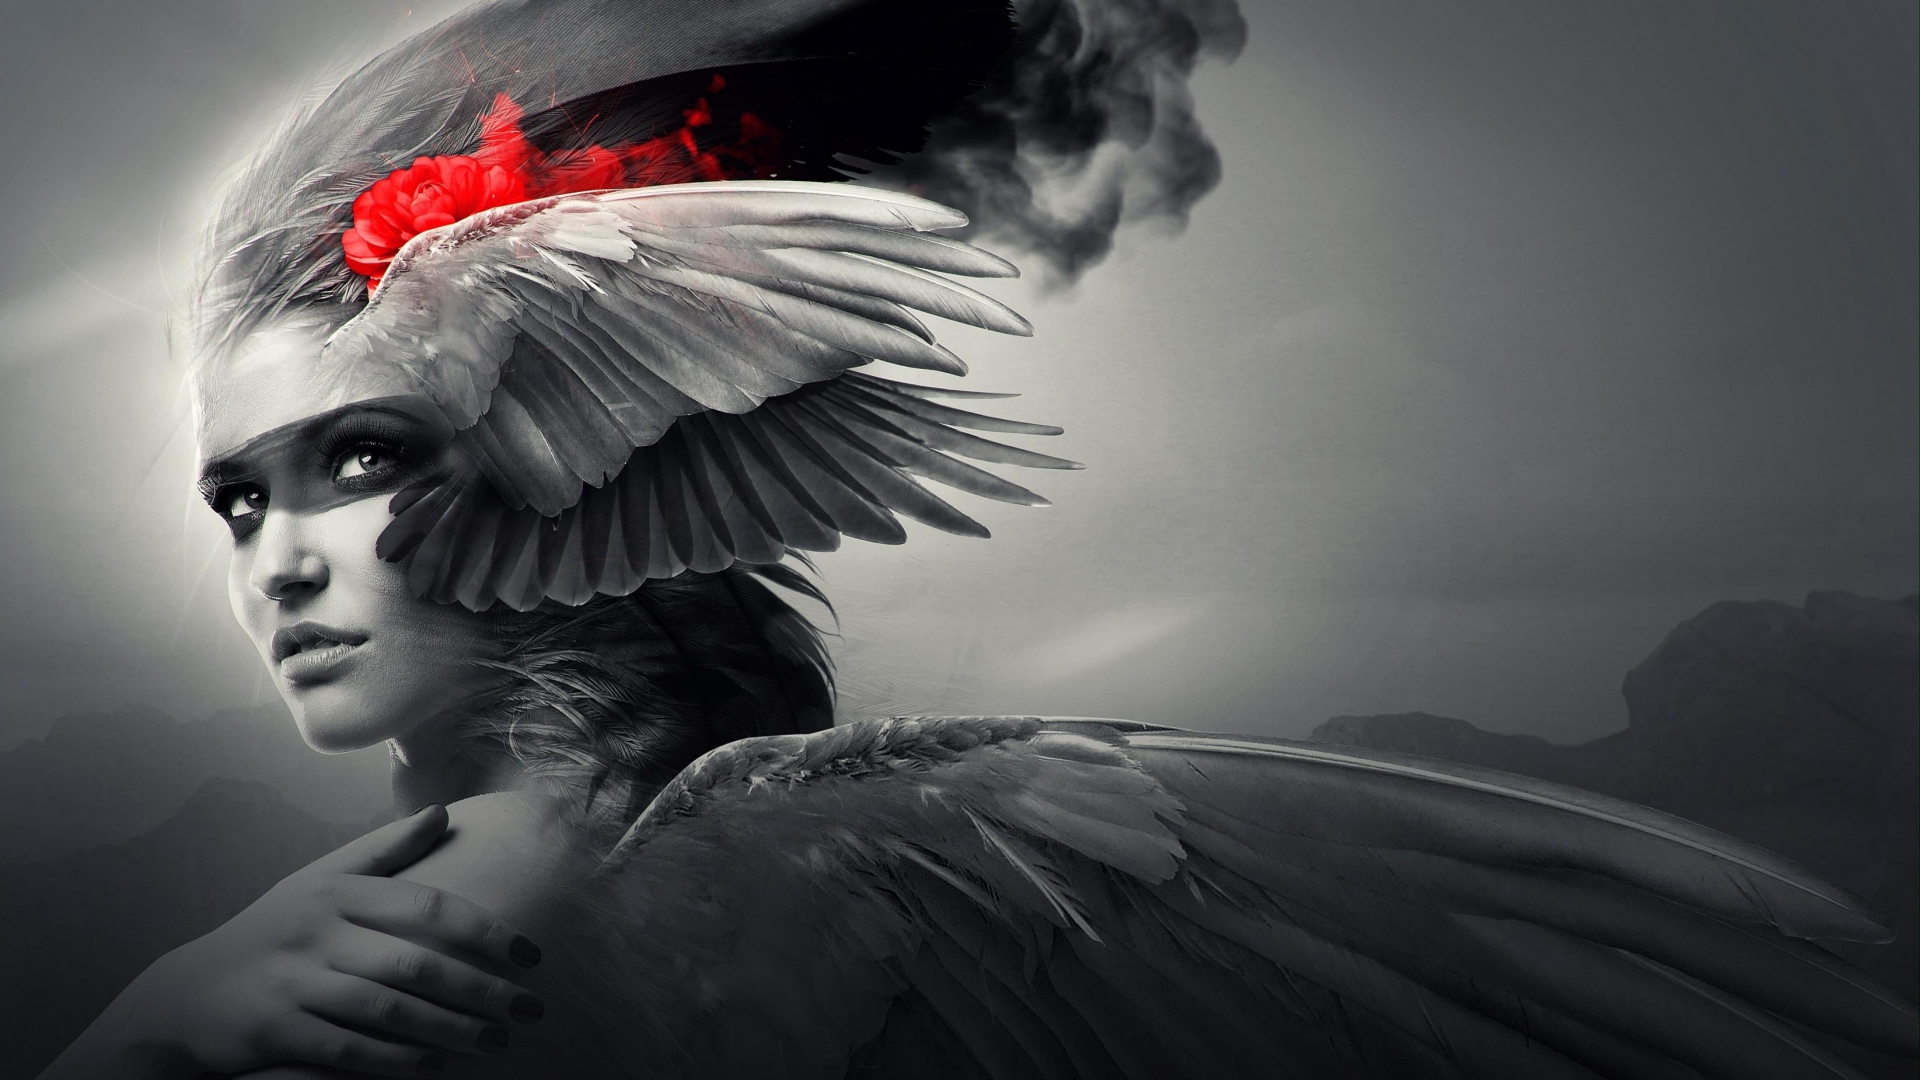 girl-wings-angel-black-white-1920x1080